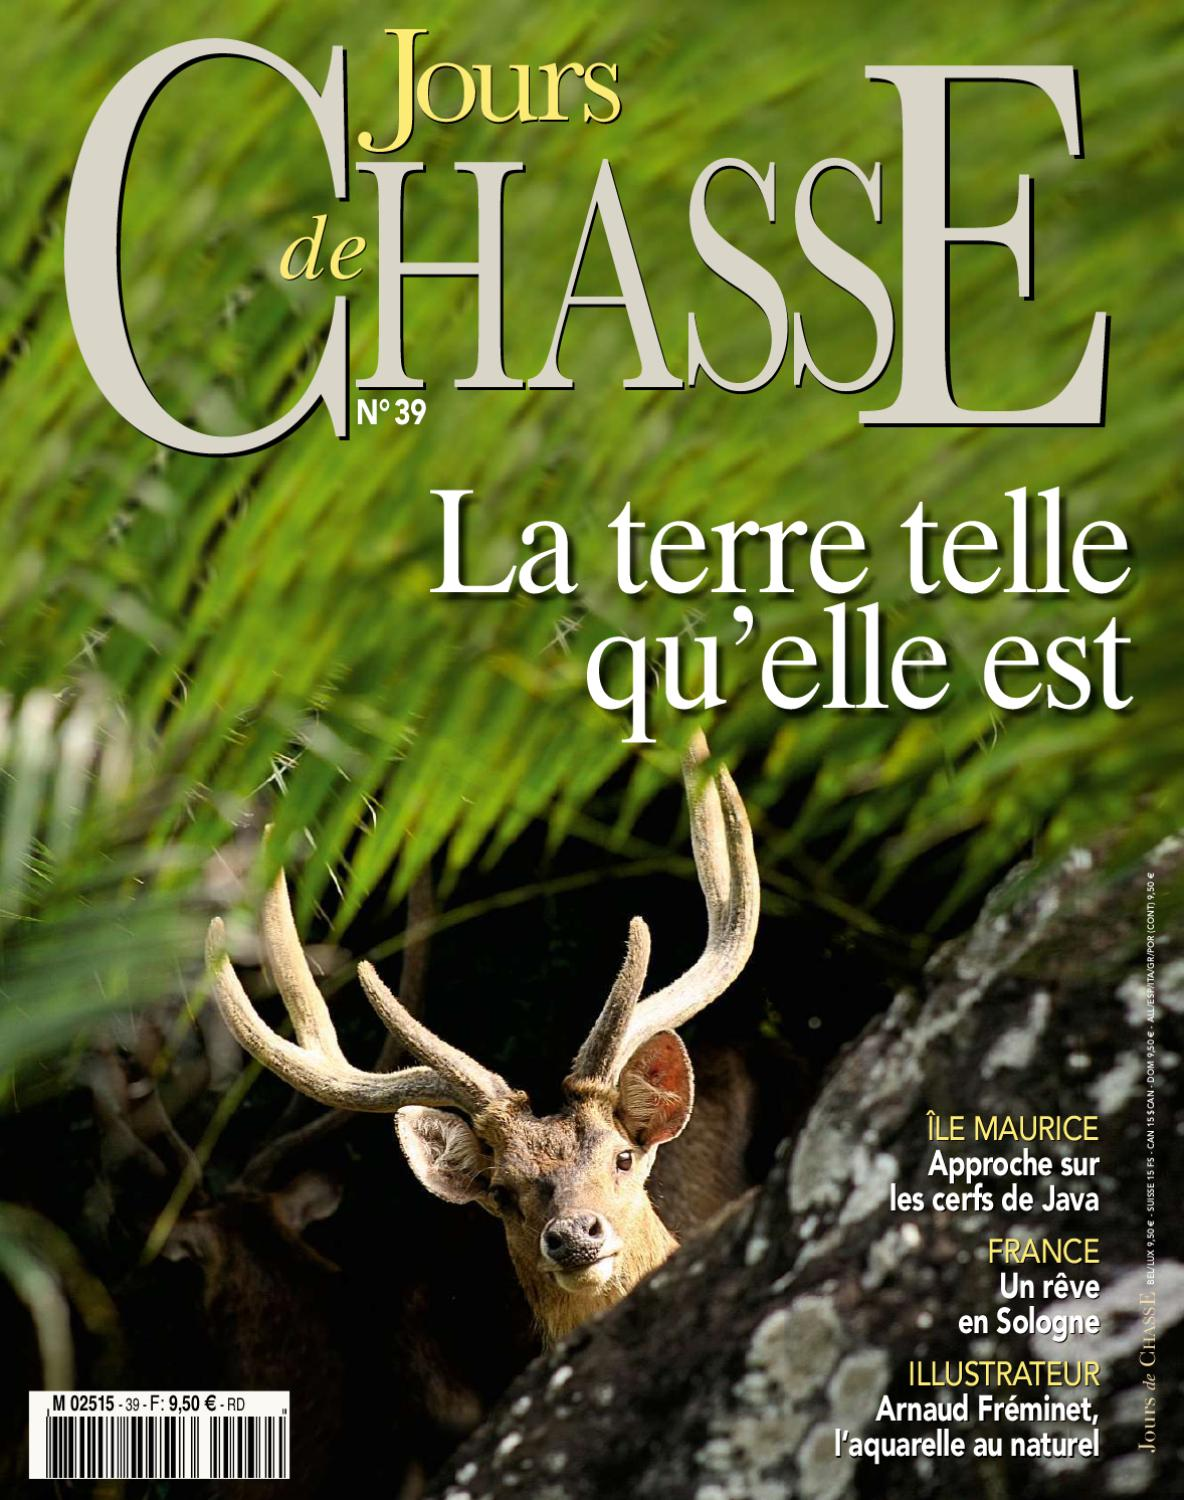 85c87a42d1d4d Jours de Chasse by Fred Pa - issuu